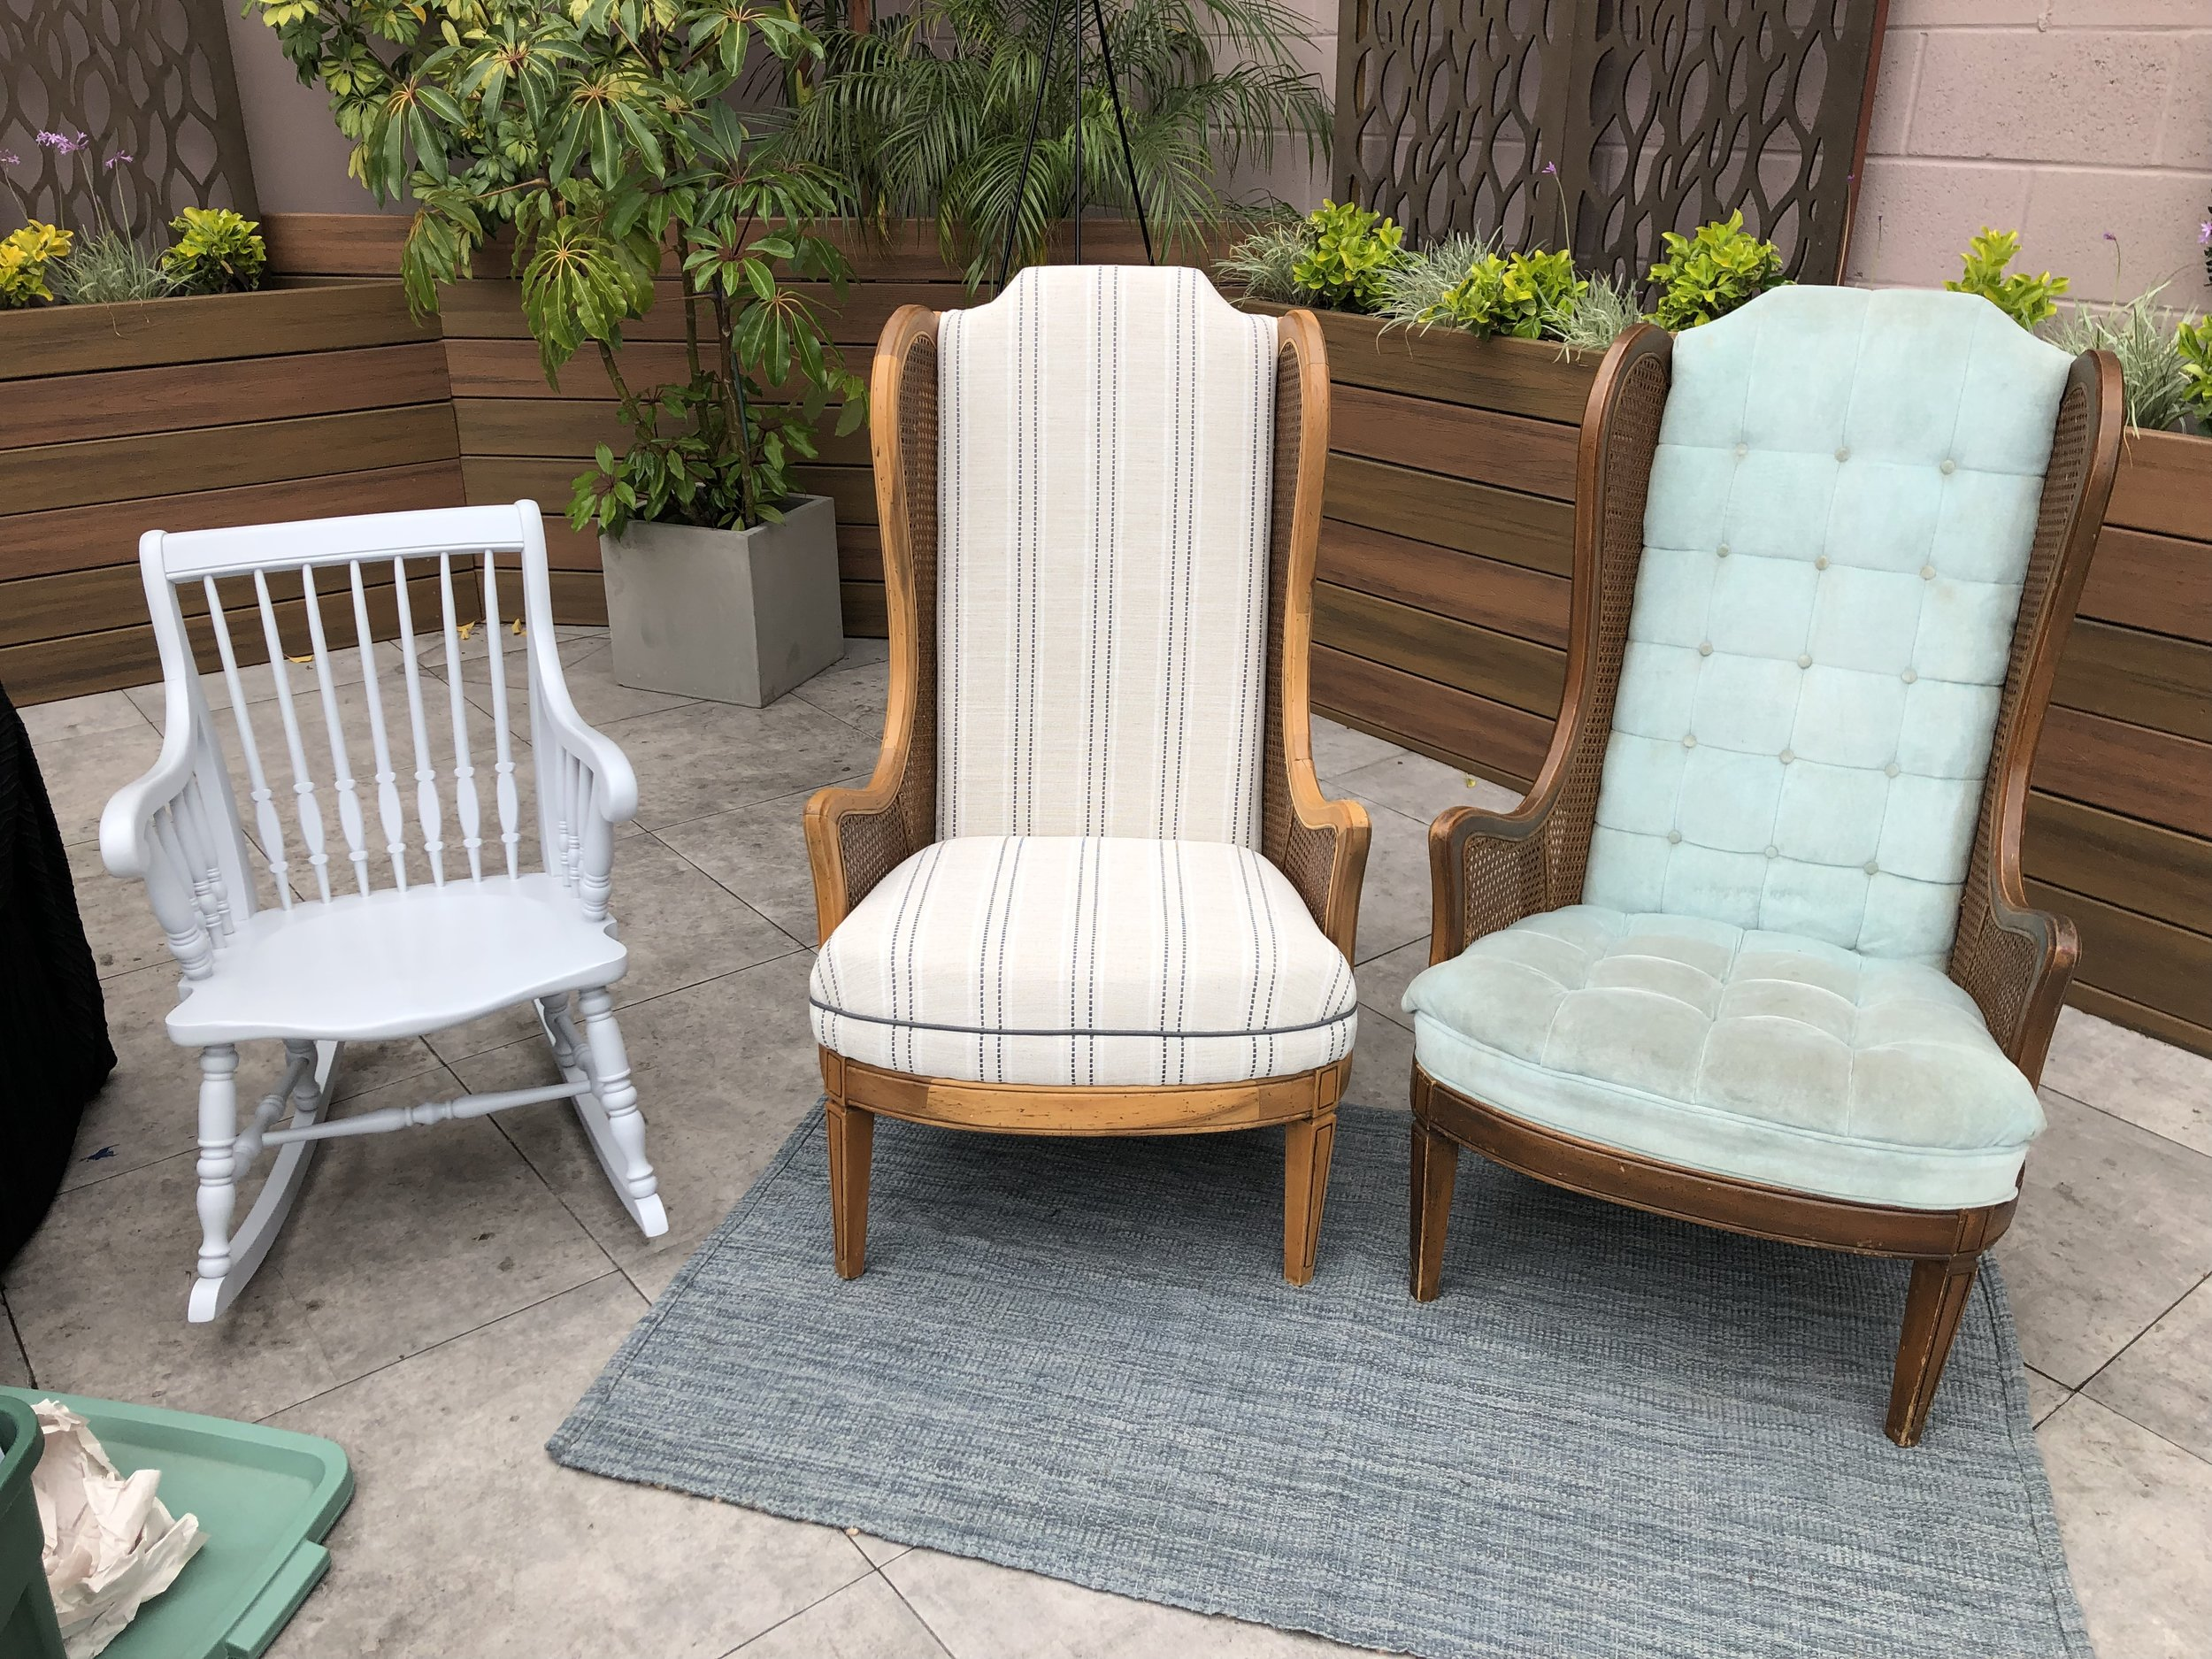 Refurbished Rocking Chair, Caned Wingback Chairs After (Stripes) and Before (blue velvet)